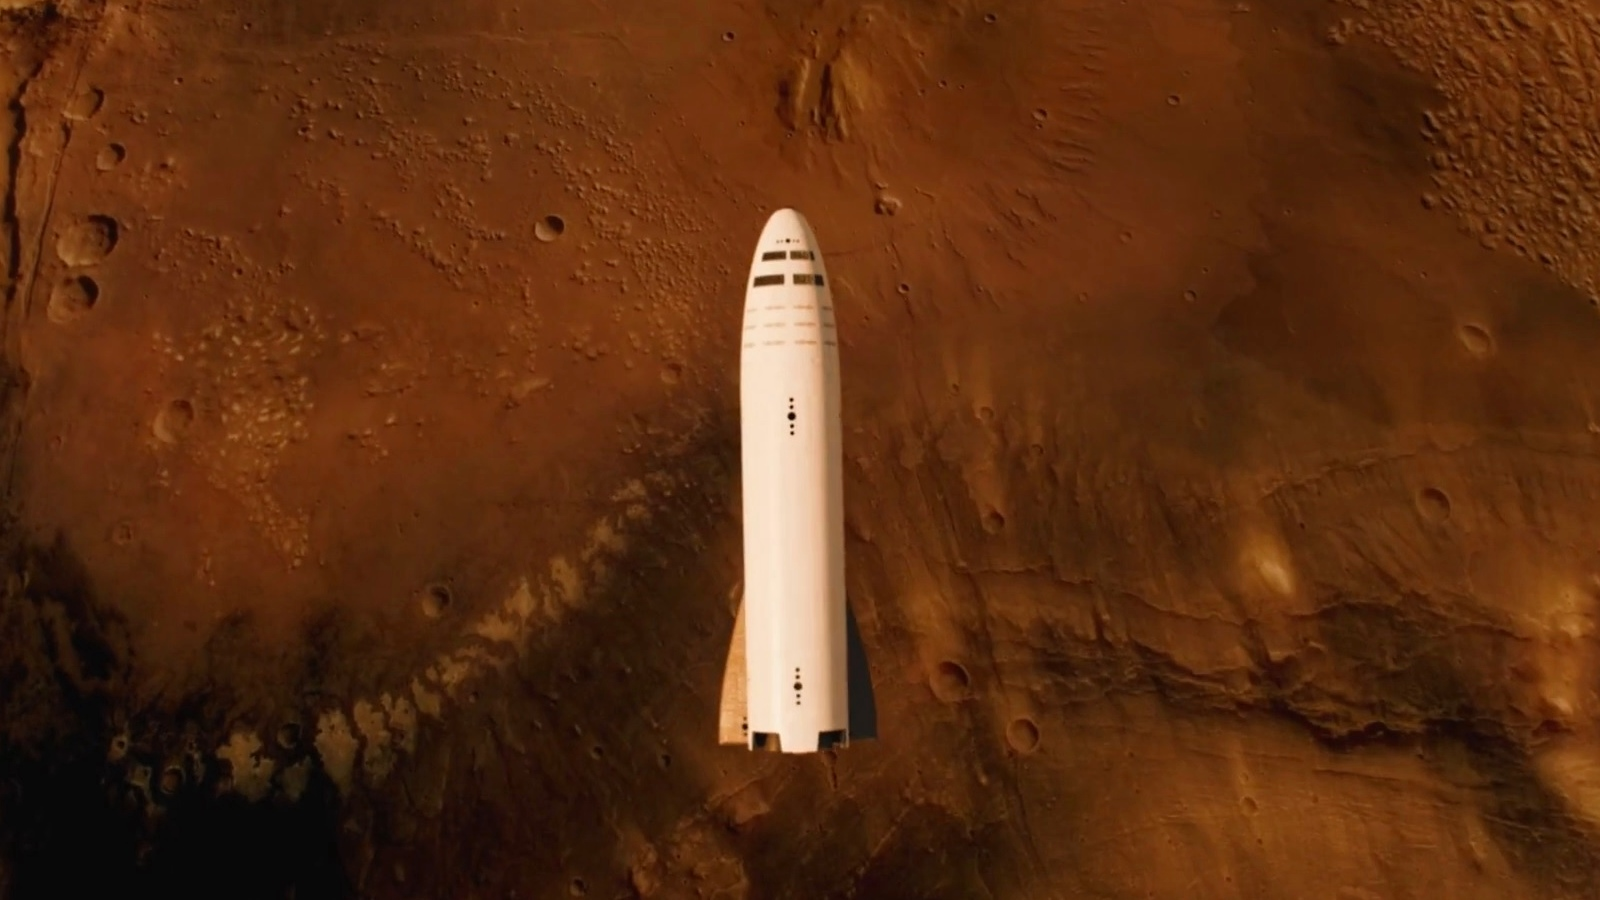 SpaceX BFR spaceship (BFS) above Mars